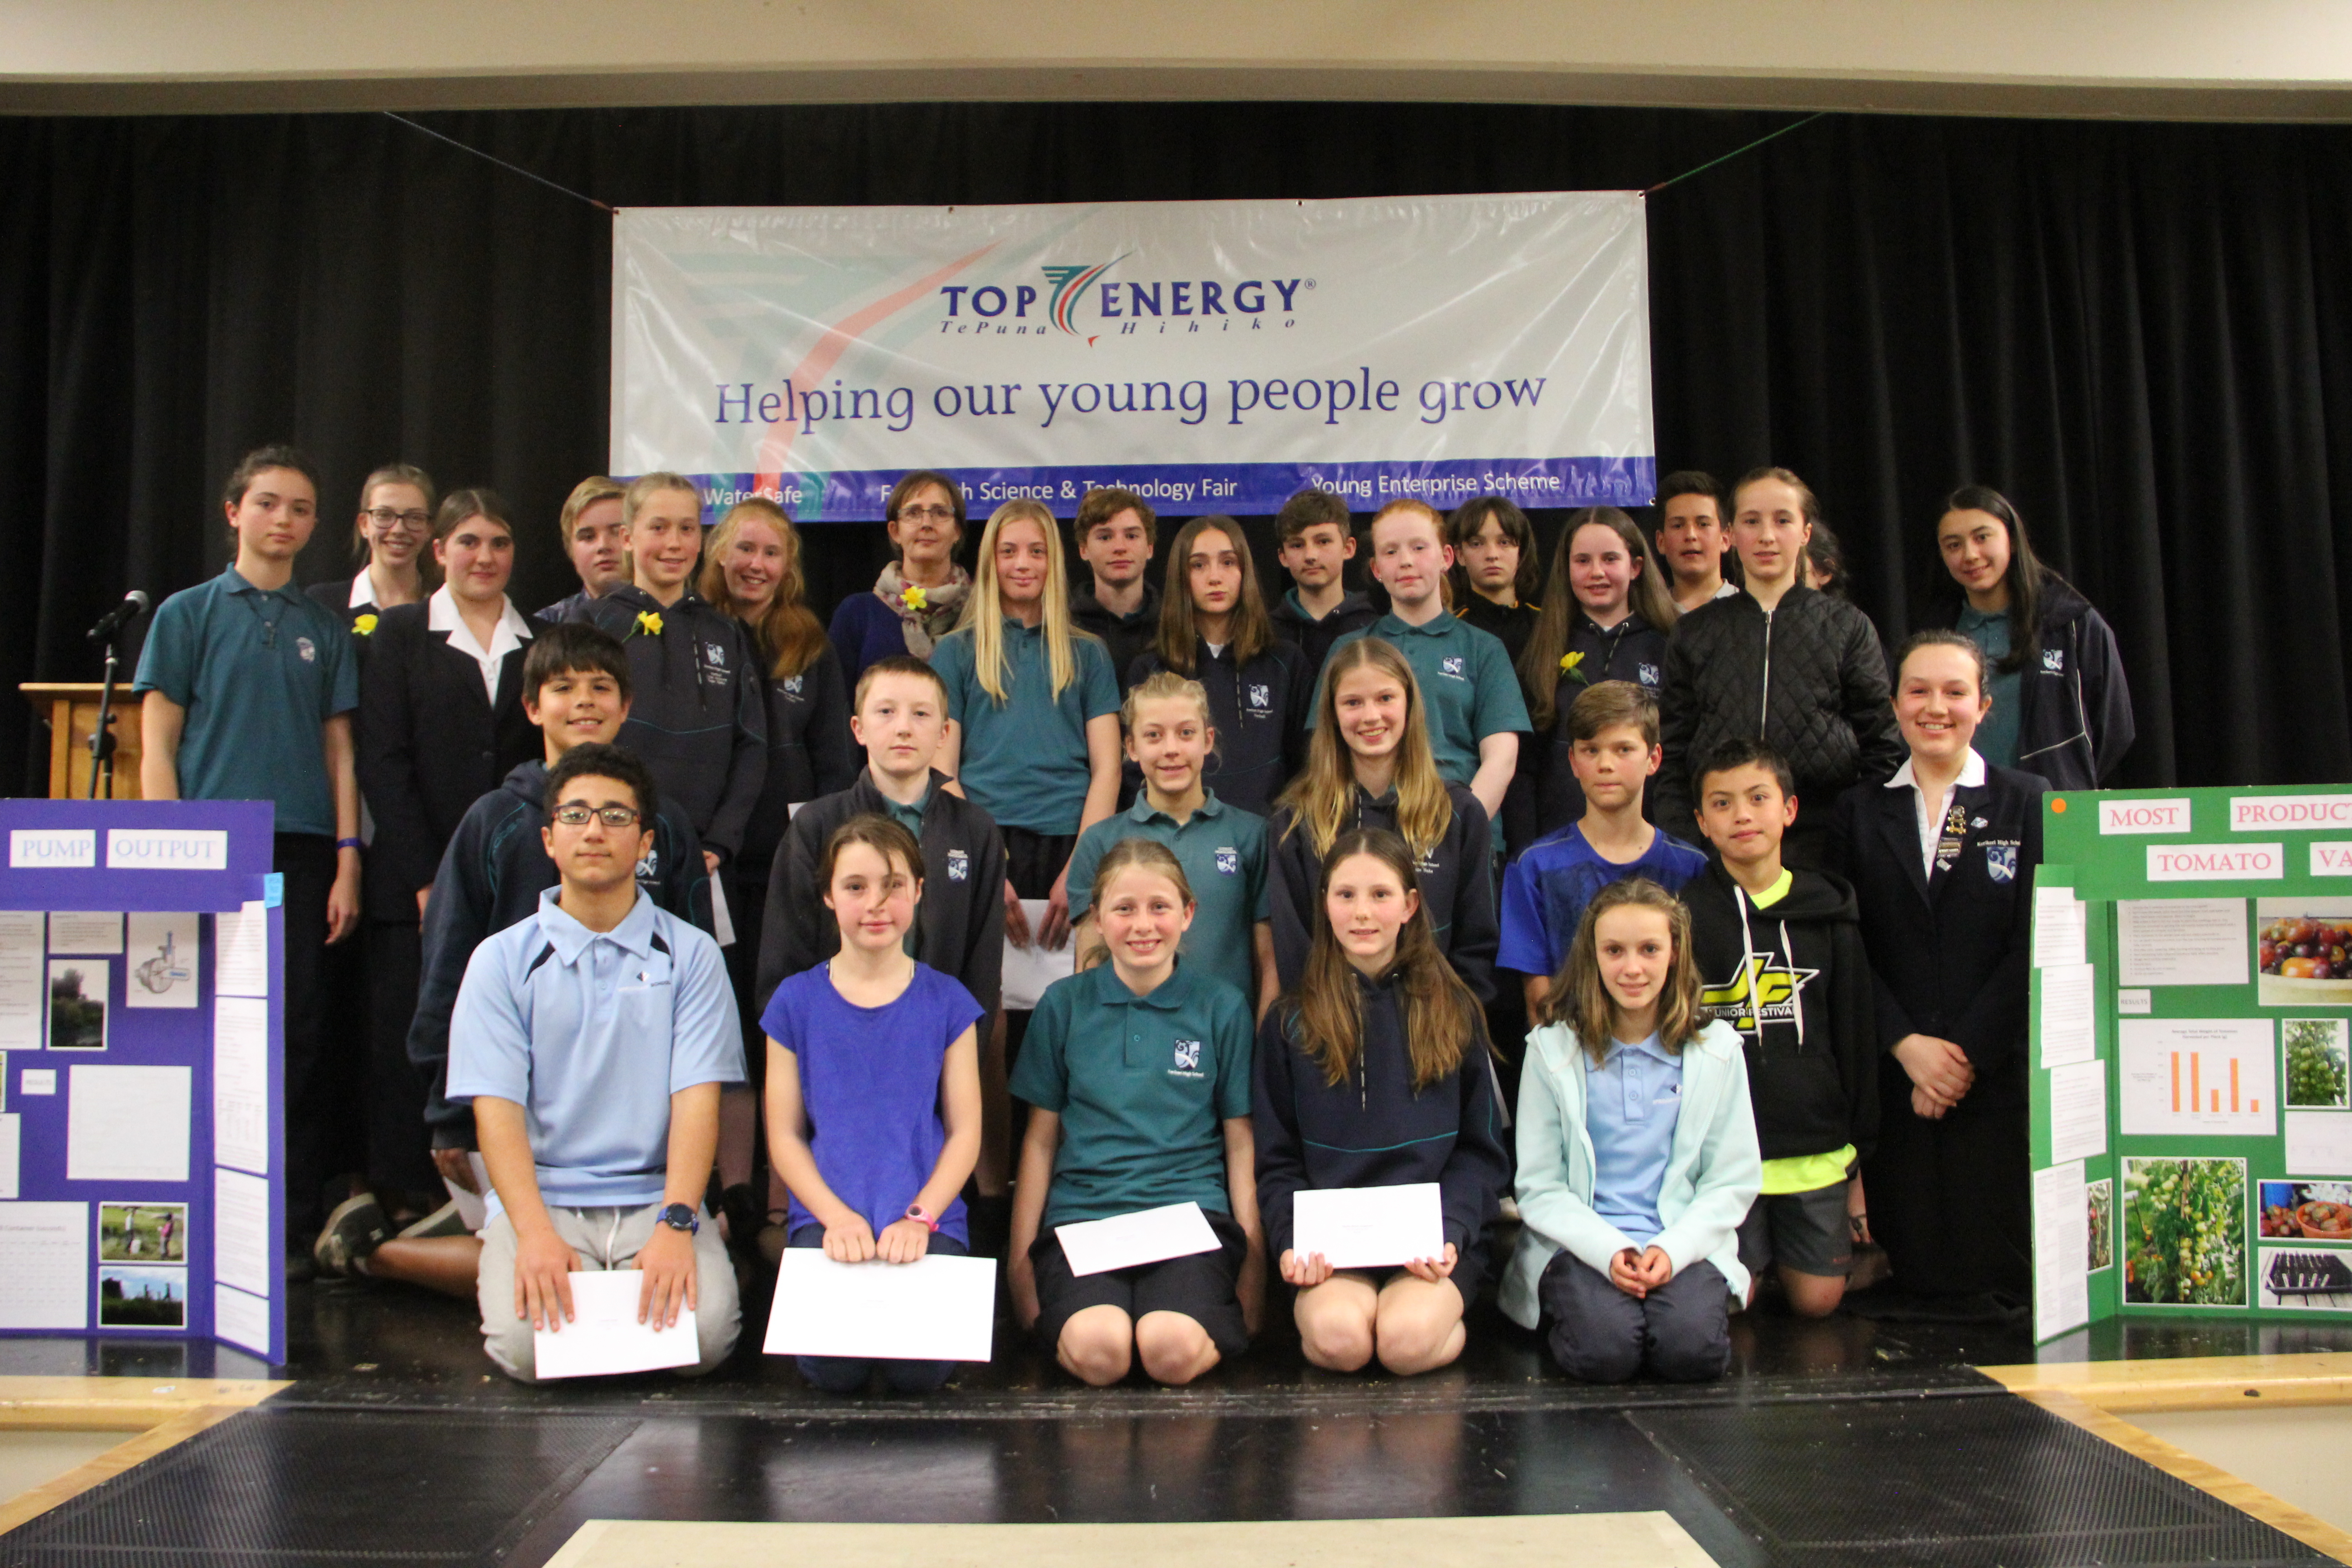 Science Fair 2019 Top Energy prize winners